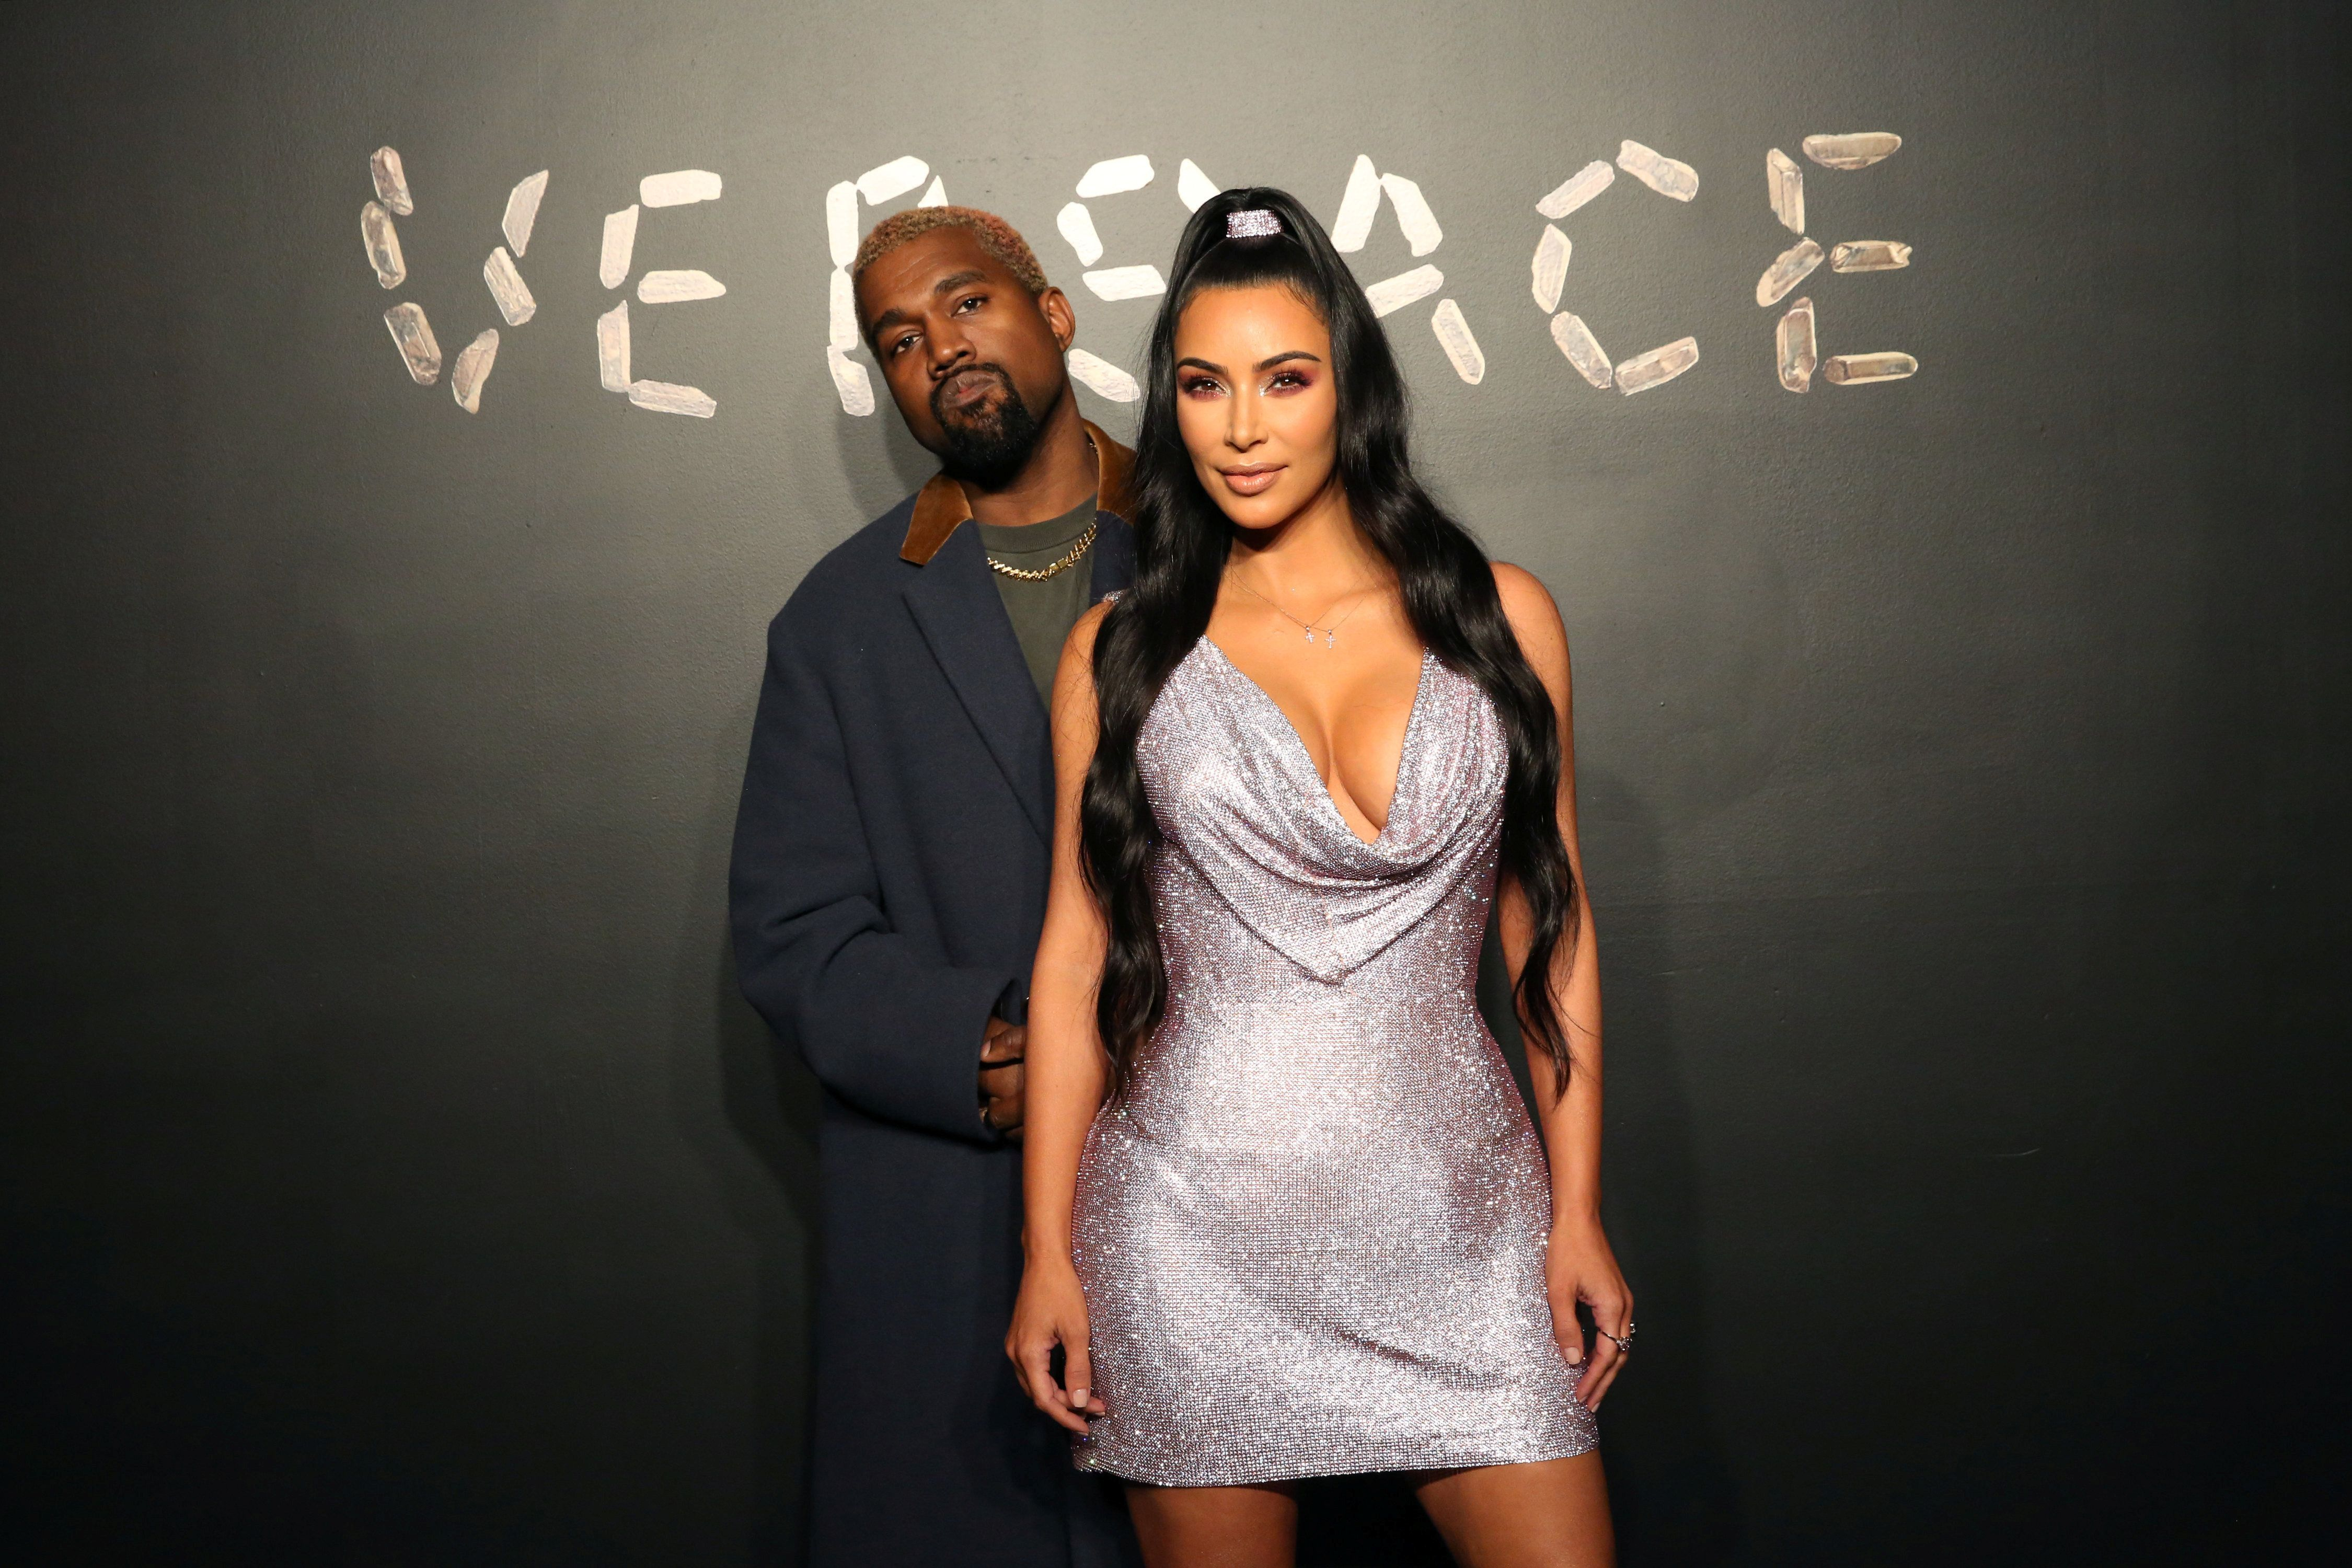 Kanye West and Kim Kardashian pose for a photo before attending the Versace presentation in New York, U.S. December 2, 2018. REUTERS/Allison Joyce